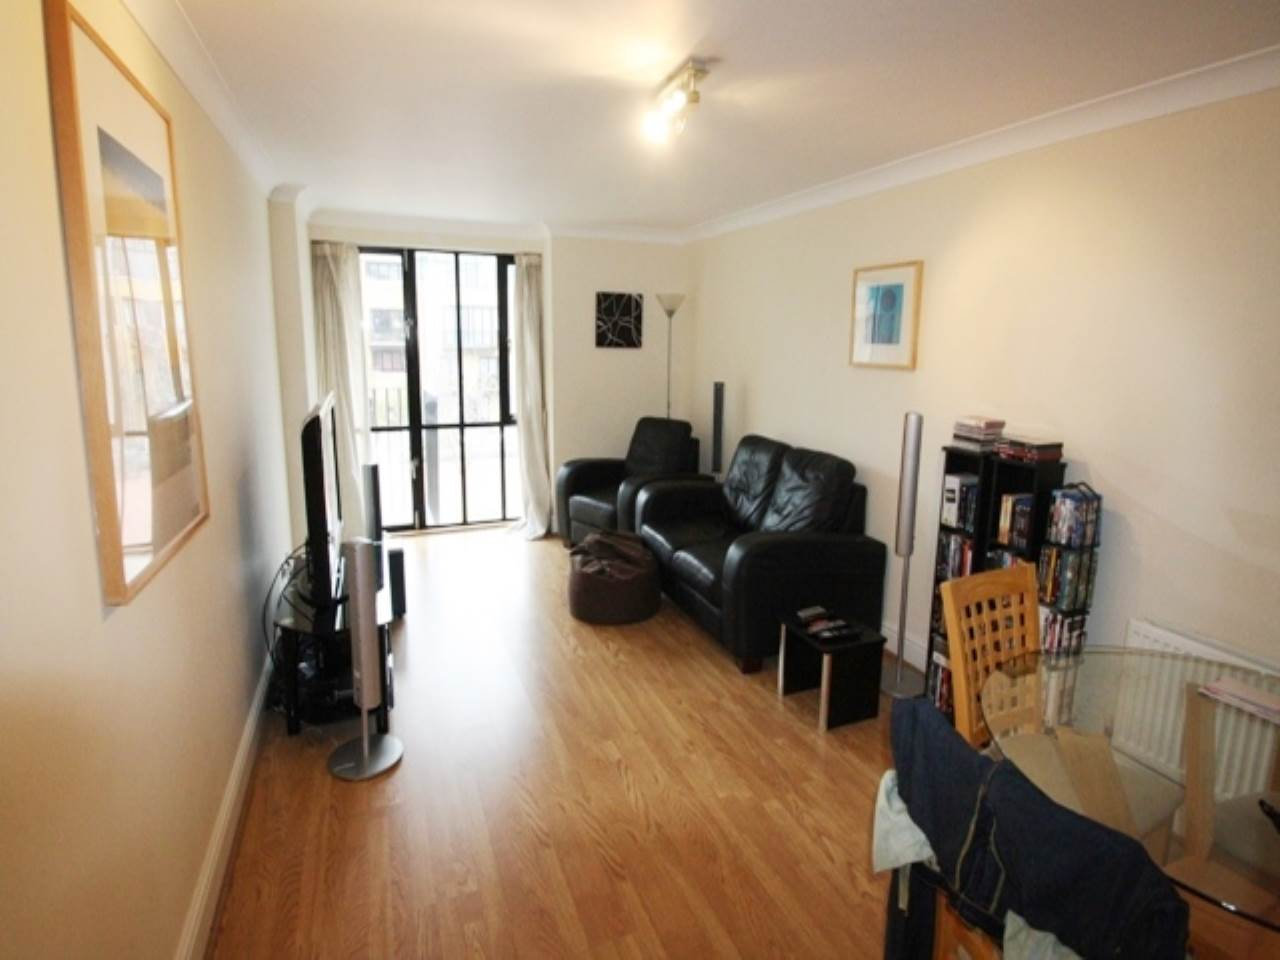 1 bed flat to rent in Taffrail House, Burrells Wharf Square, E14